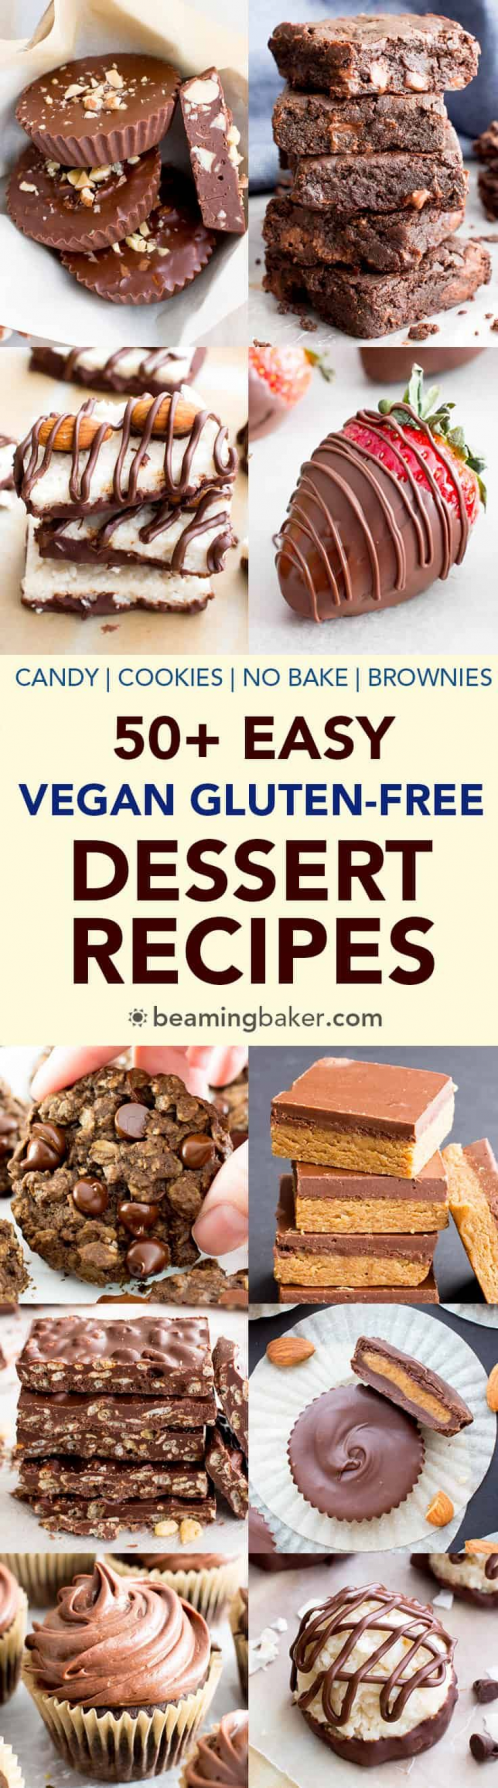 50 Easy Vegan Dessert Recipes V Gf The Ultimate Collection Of Seriously Satisfying Easy Vegan In 2020 Vegan Dessert Recipes Easy Vegan Dessert Dessert Recipes Easy